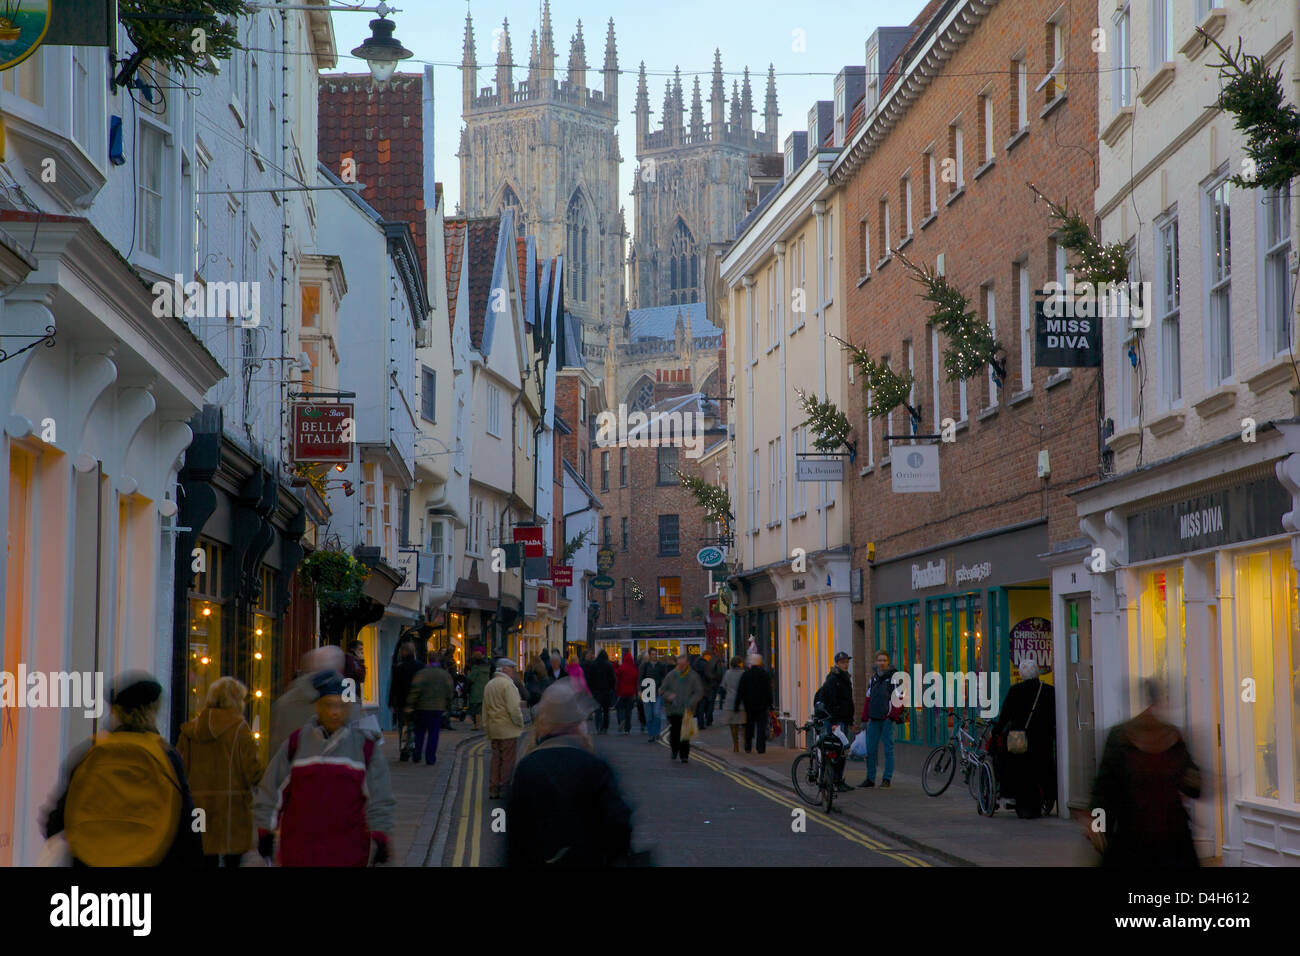 Colliergate and Minster at Christmas, York, Yorkshire, England, UK - Stock Image